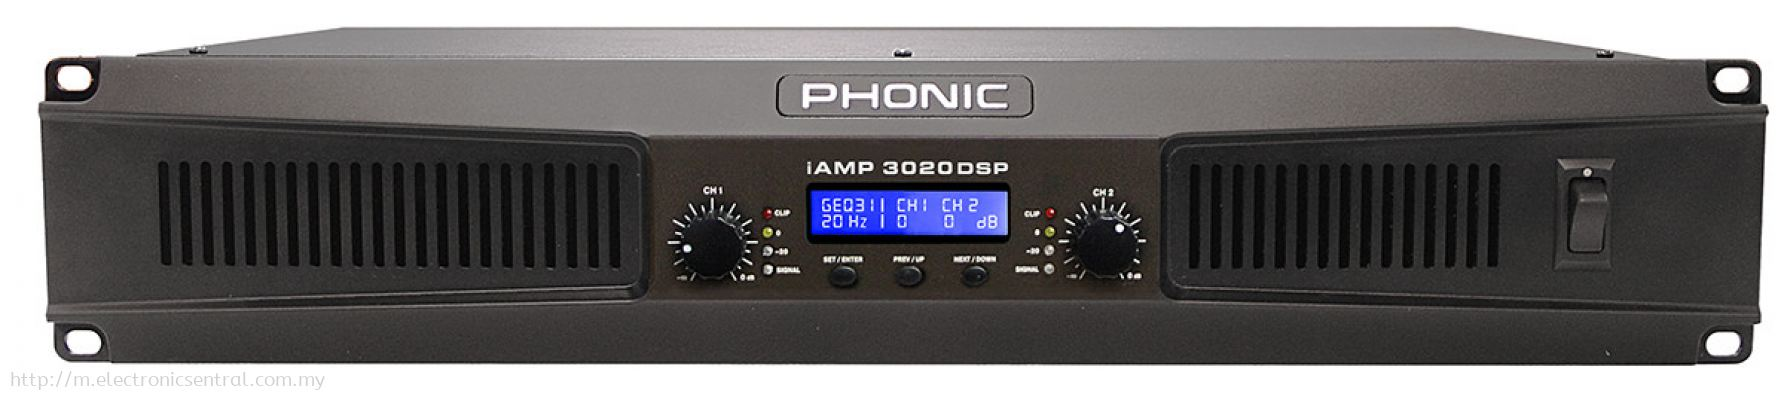 PHONIC POWER AMP iAMP 3020